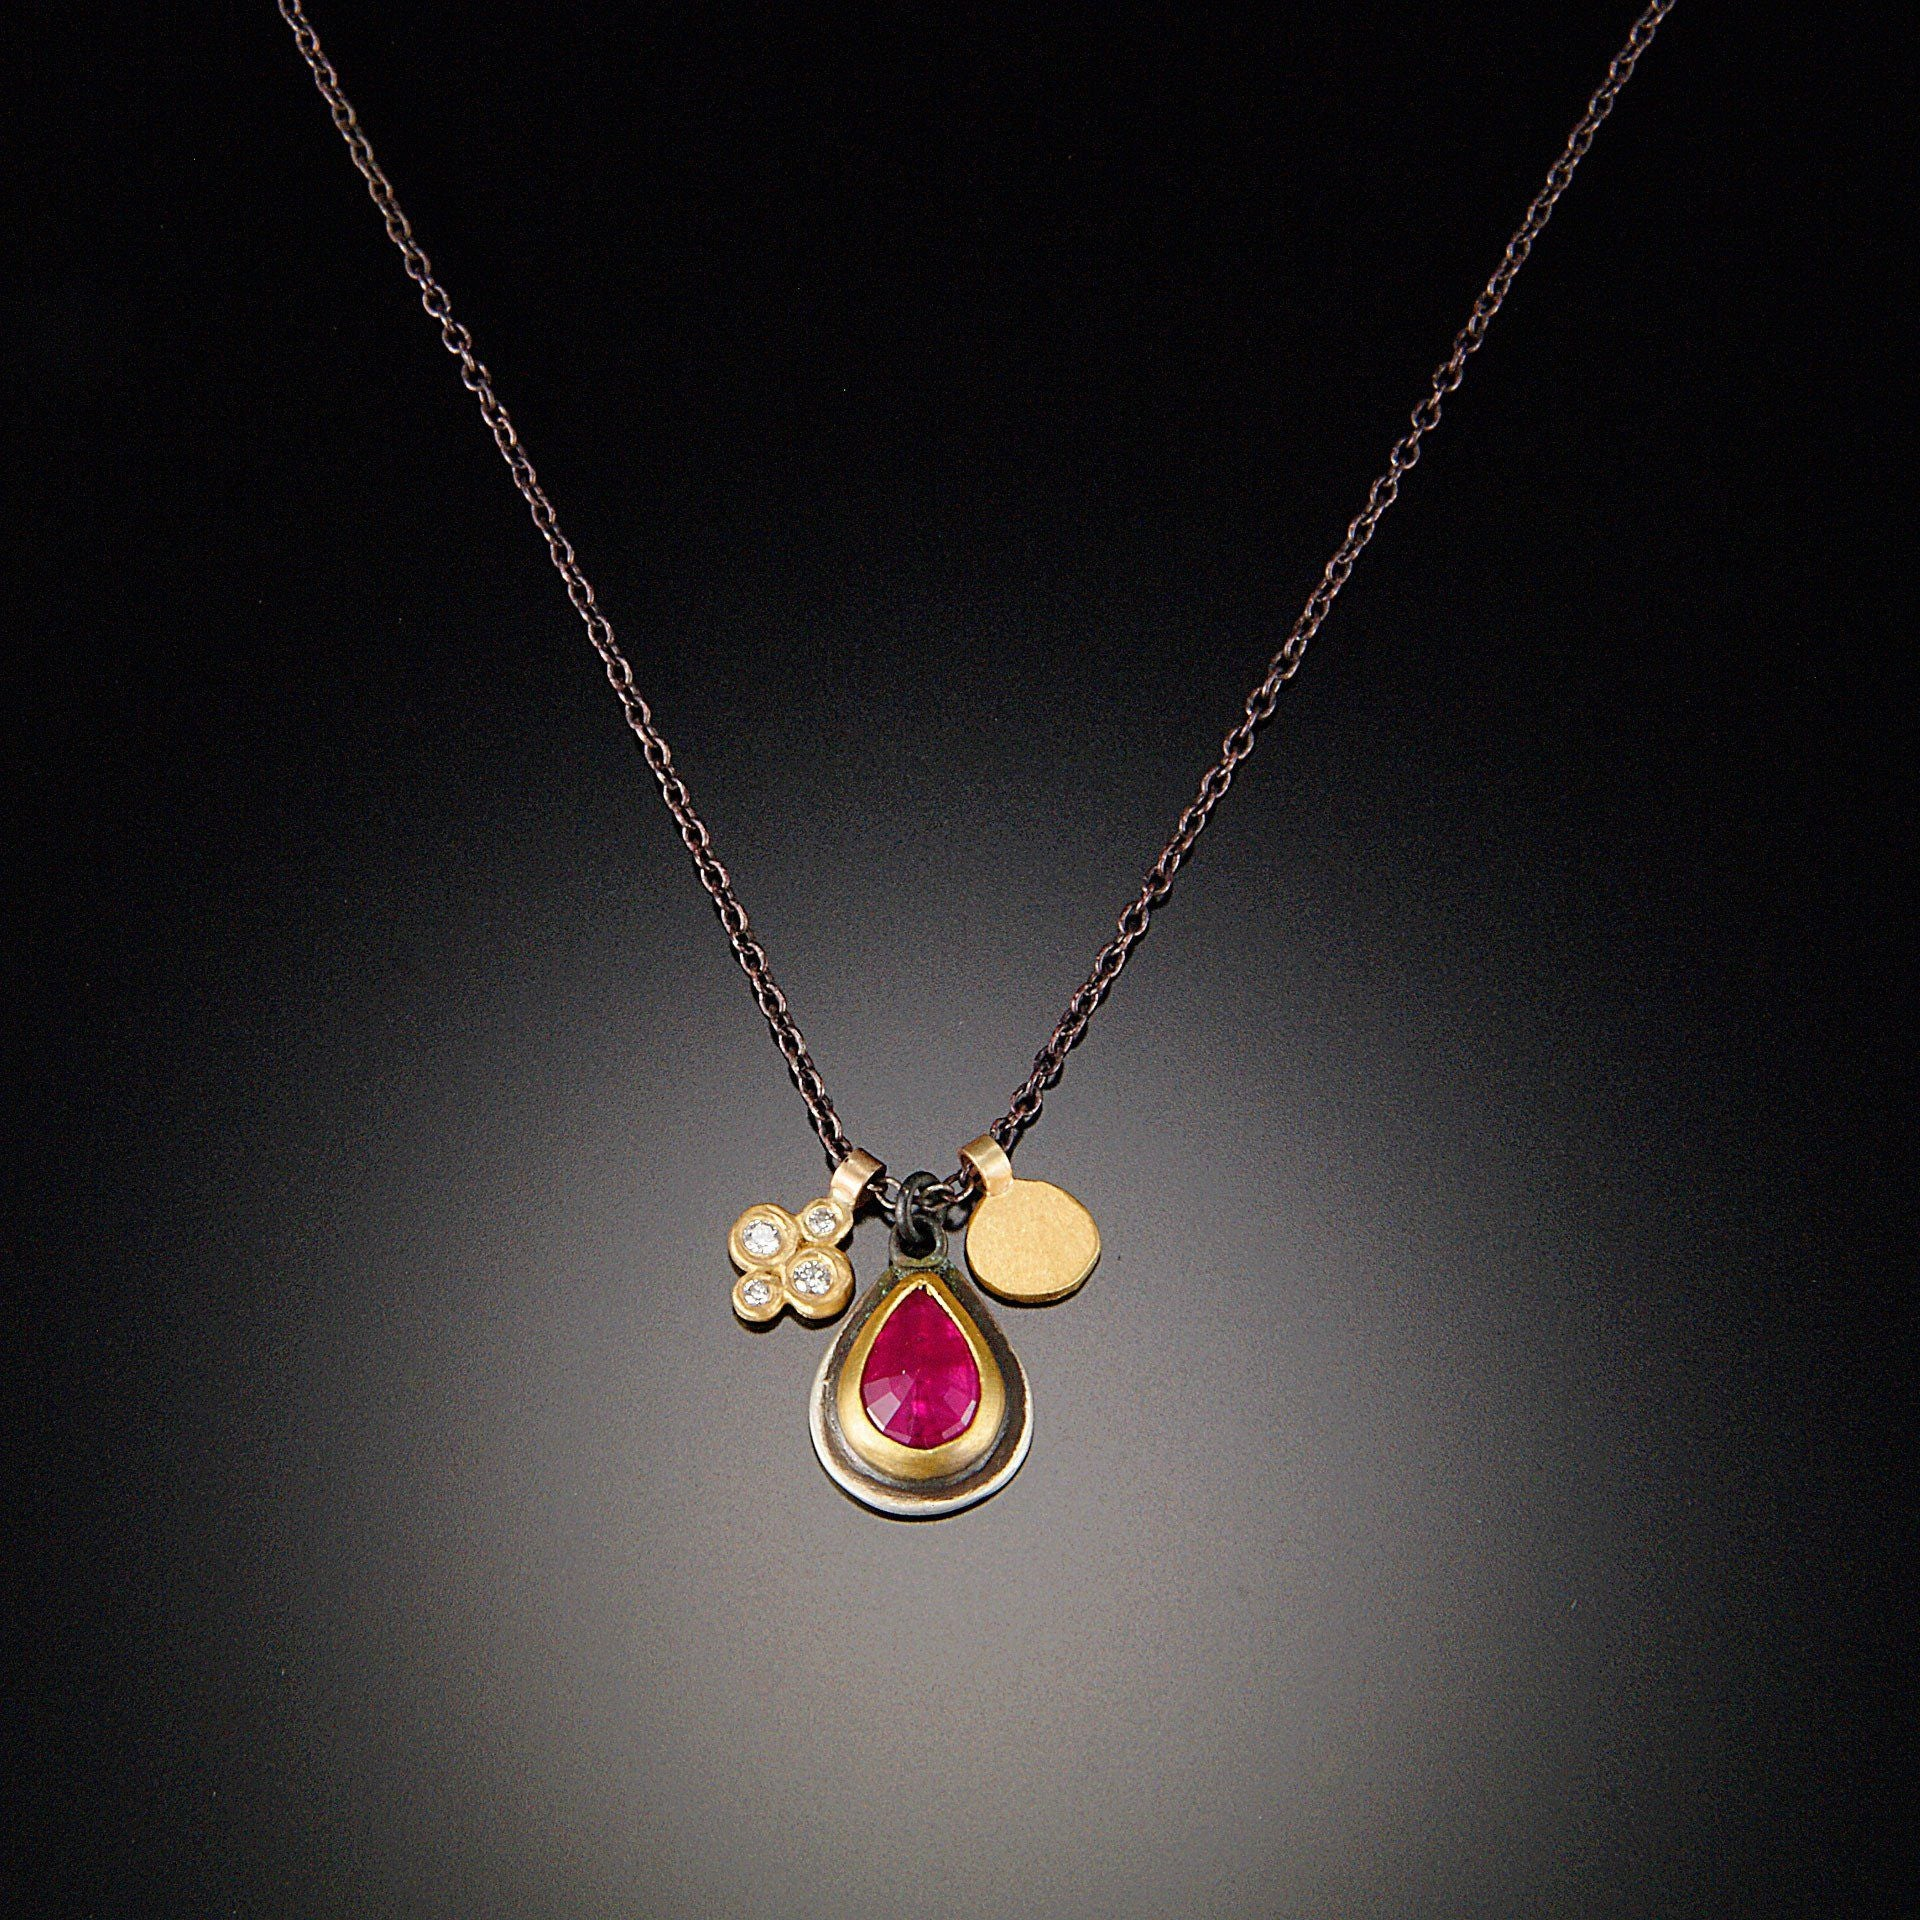 Rose Cut Ruby Charm Necklace with Diamonds